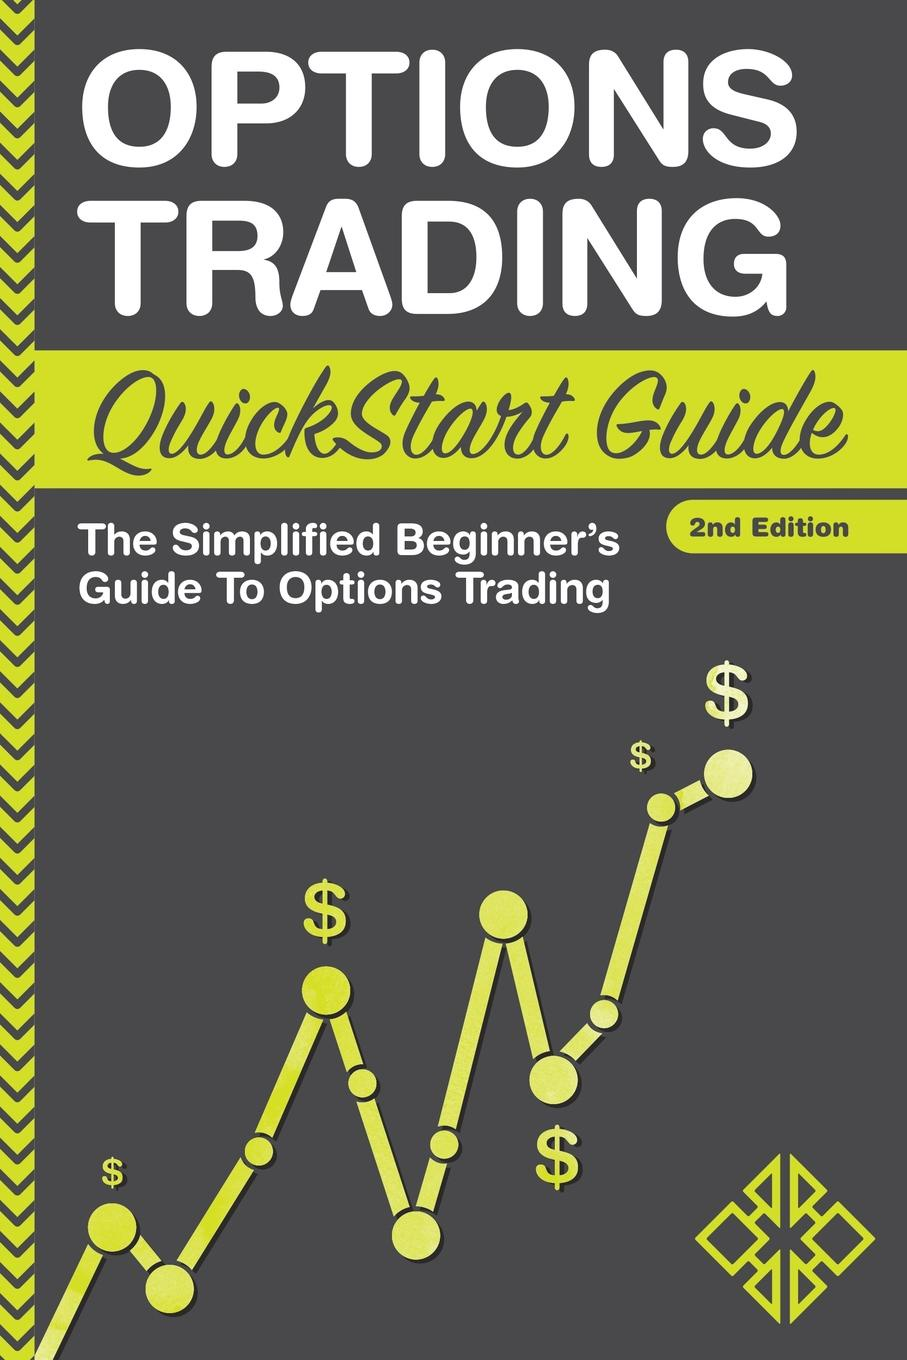 Clydebank Finance Options Trading QuickStart Guide. The Simplified Beginner's Guide To Options Trading george fontanills a trade options online